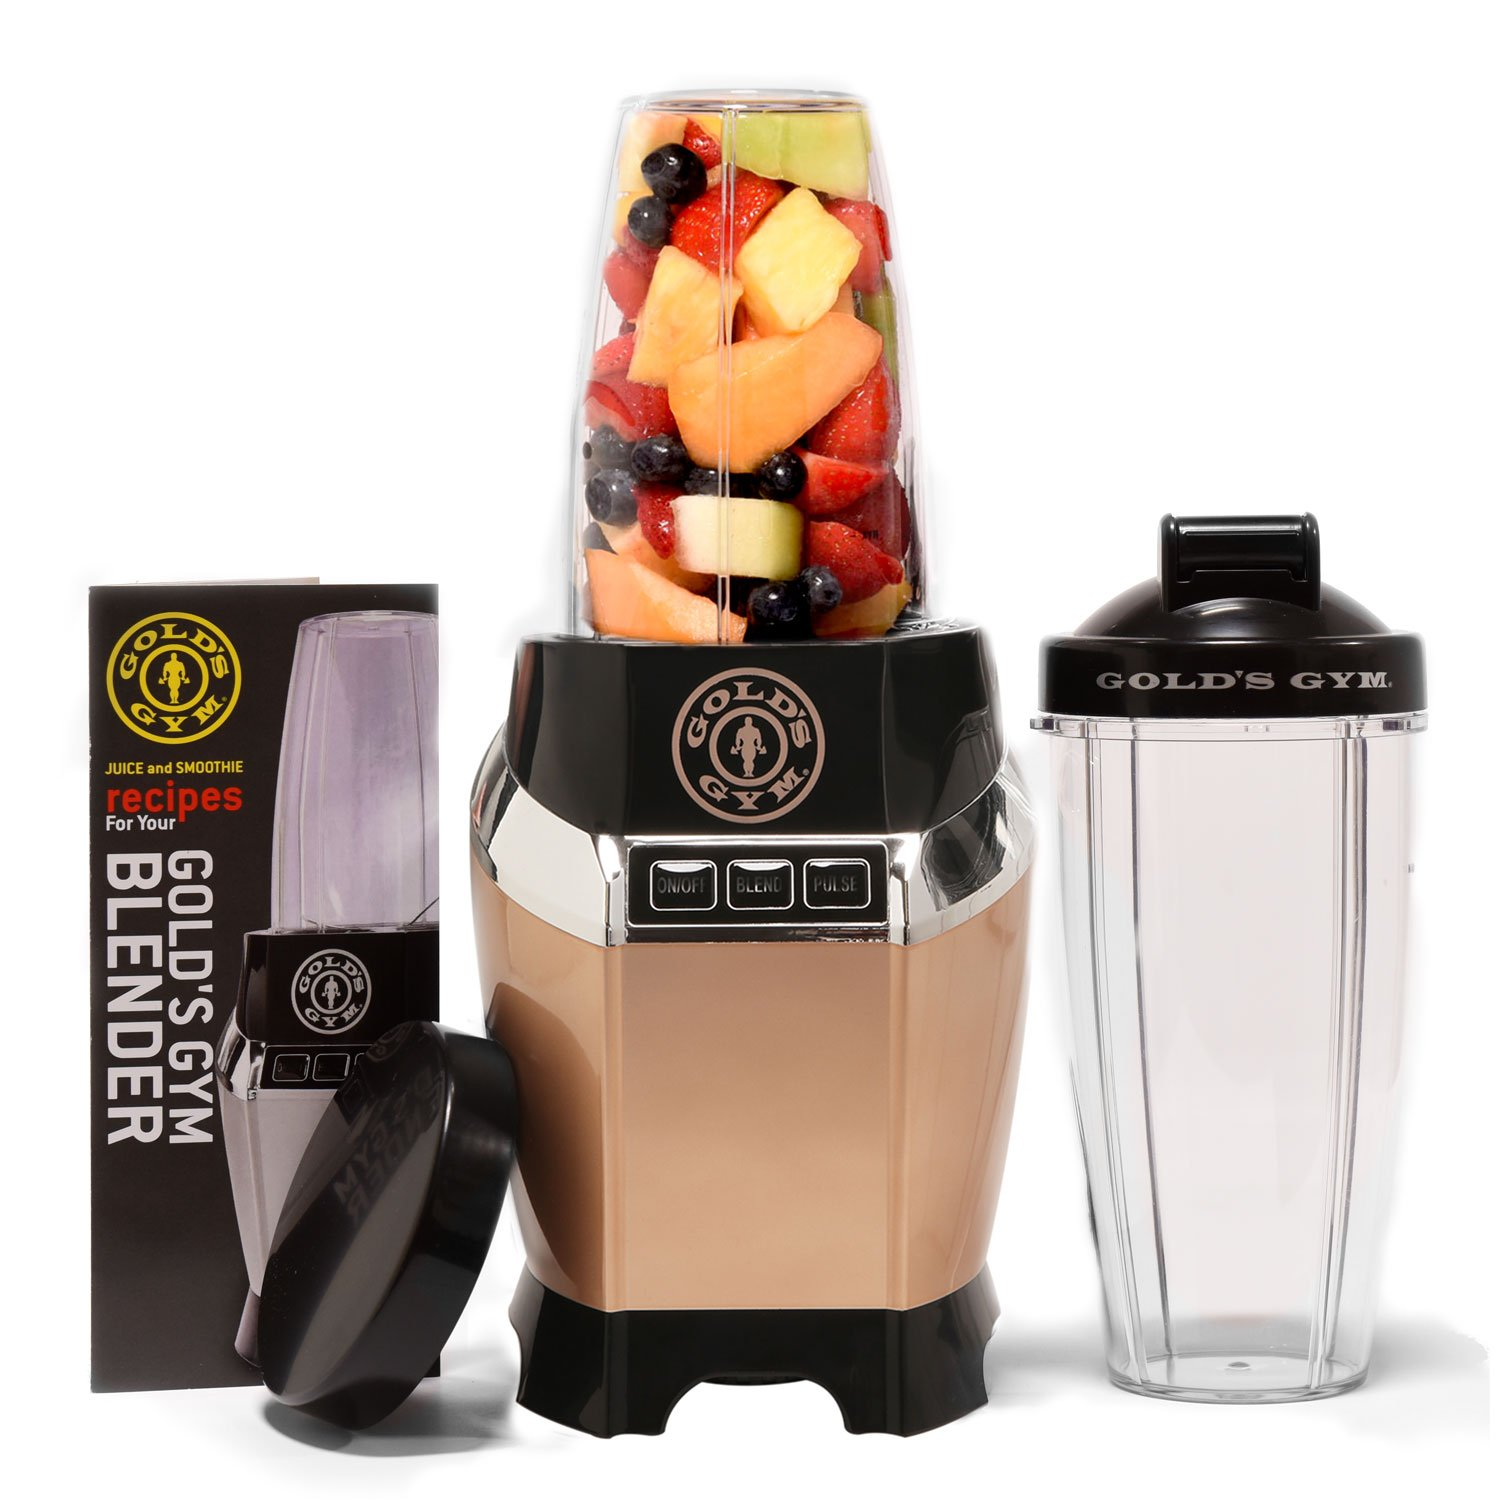 Golds Gym 1000 Watt Personal Power Blender for Shakes and Smoothies - Healthy with 2 Portable Dishwasher Safe Travel Sports Bottles/Cups, Supreme Strength - Gold Gold's Gym GG-BP111G